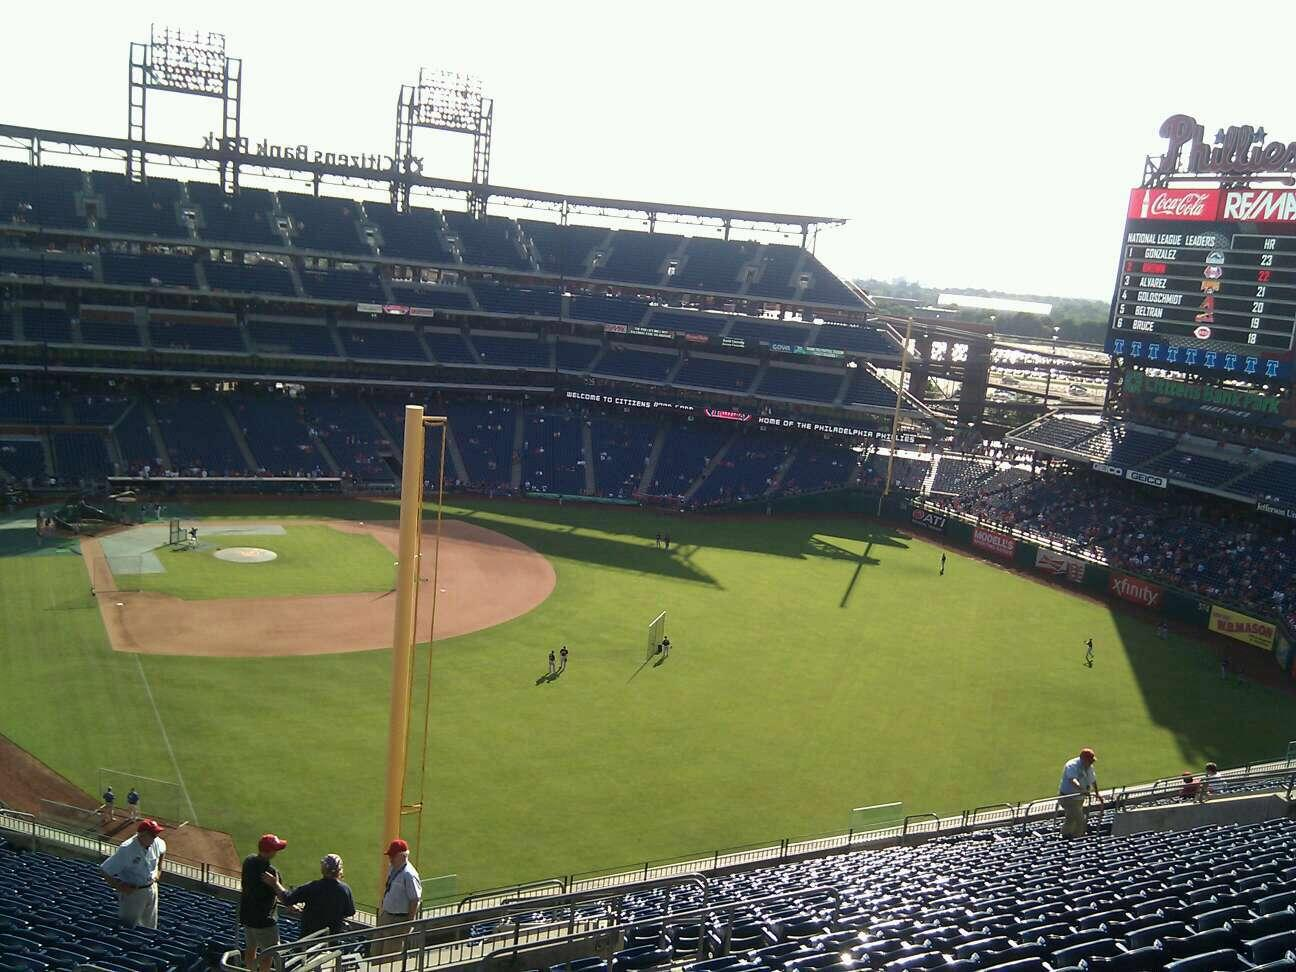 Citizens Bank Park Section 305 Row 21 Seat 30